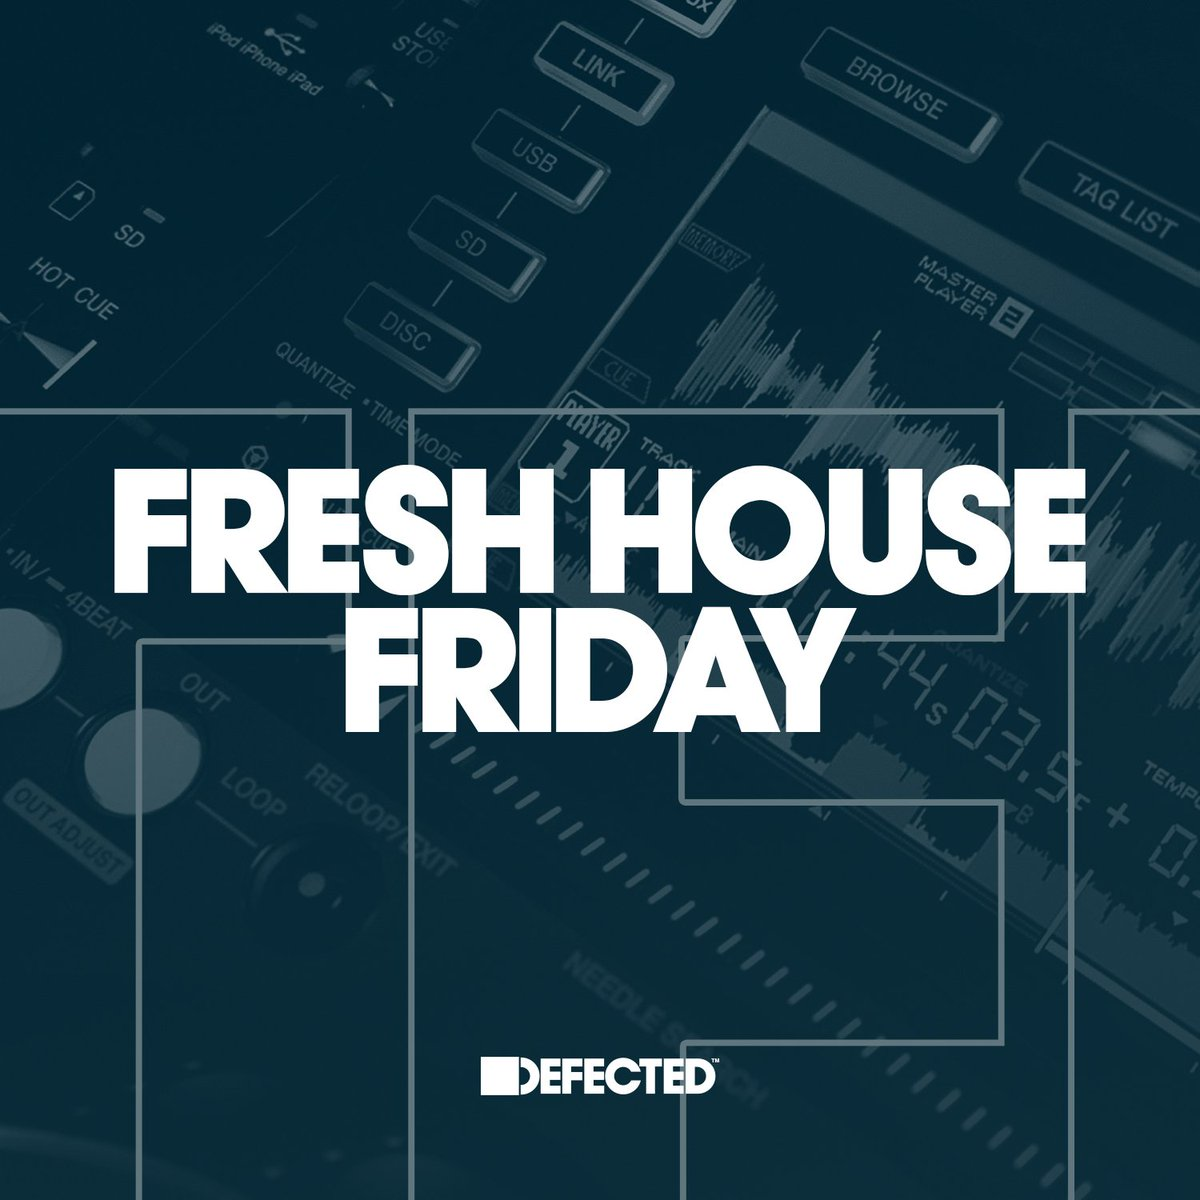 Fresh House Friday By Defected 2018-05-18